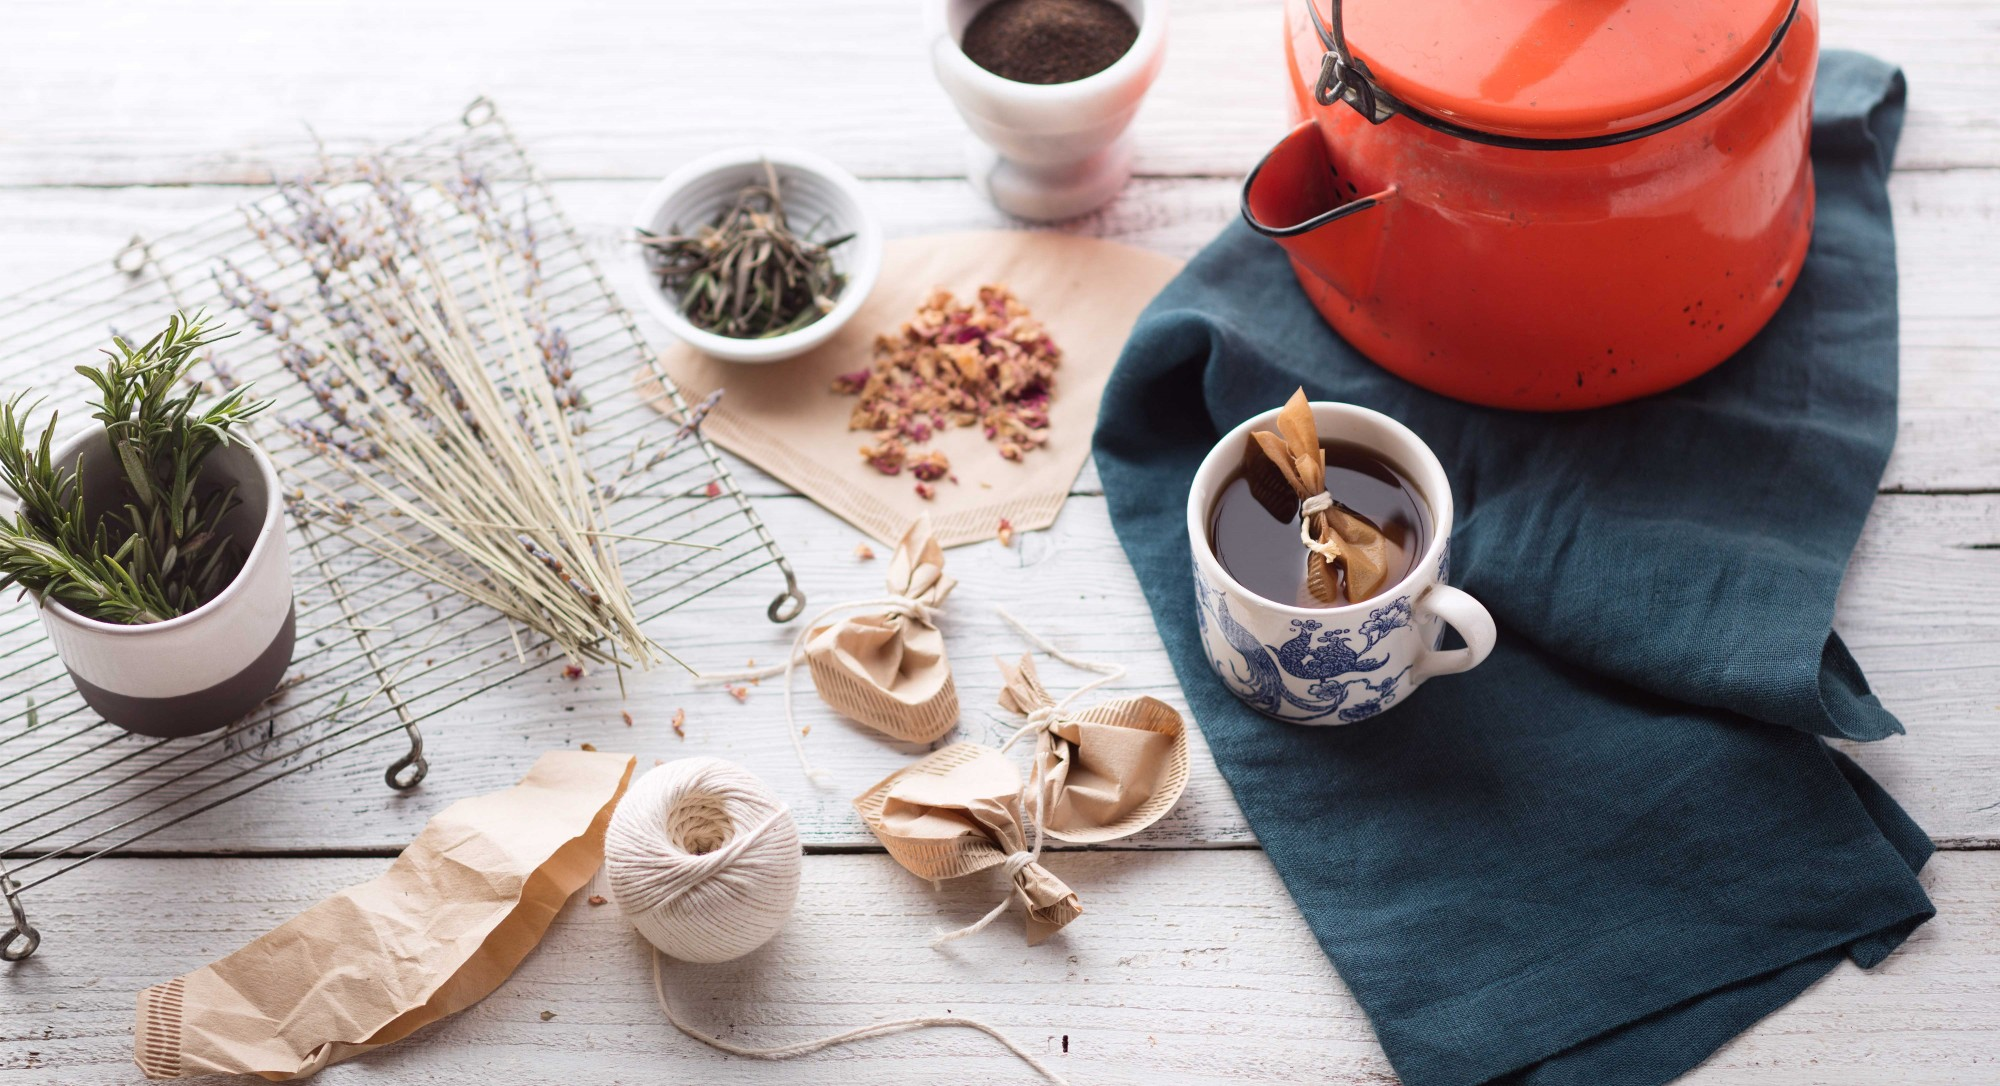 5 Diy Herbal Amp Floral Blends To Spice Up Your Tea Game